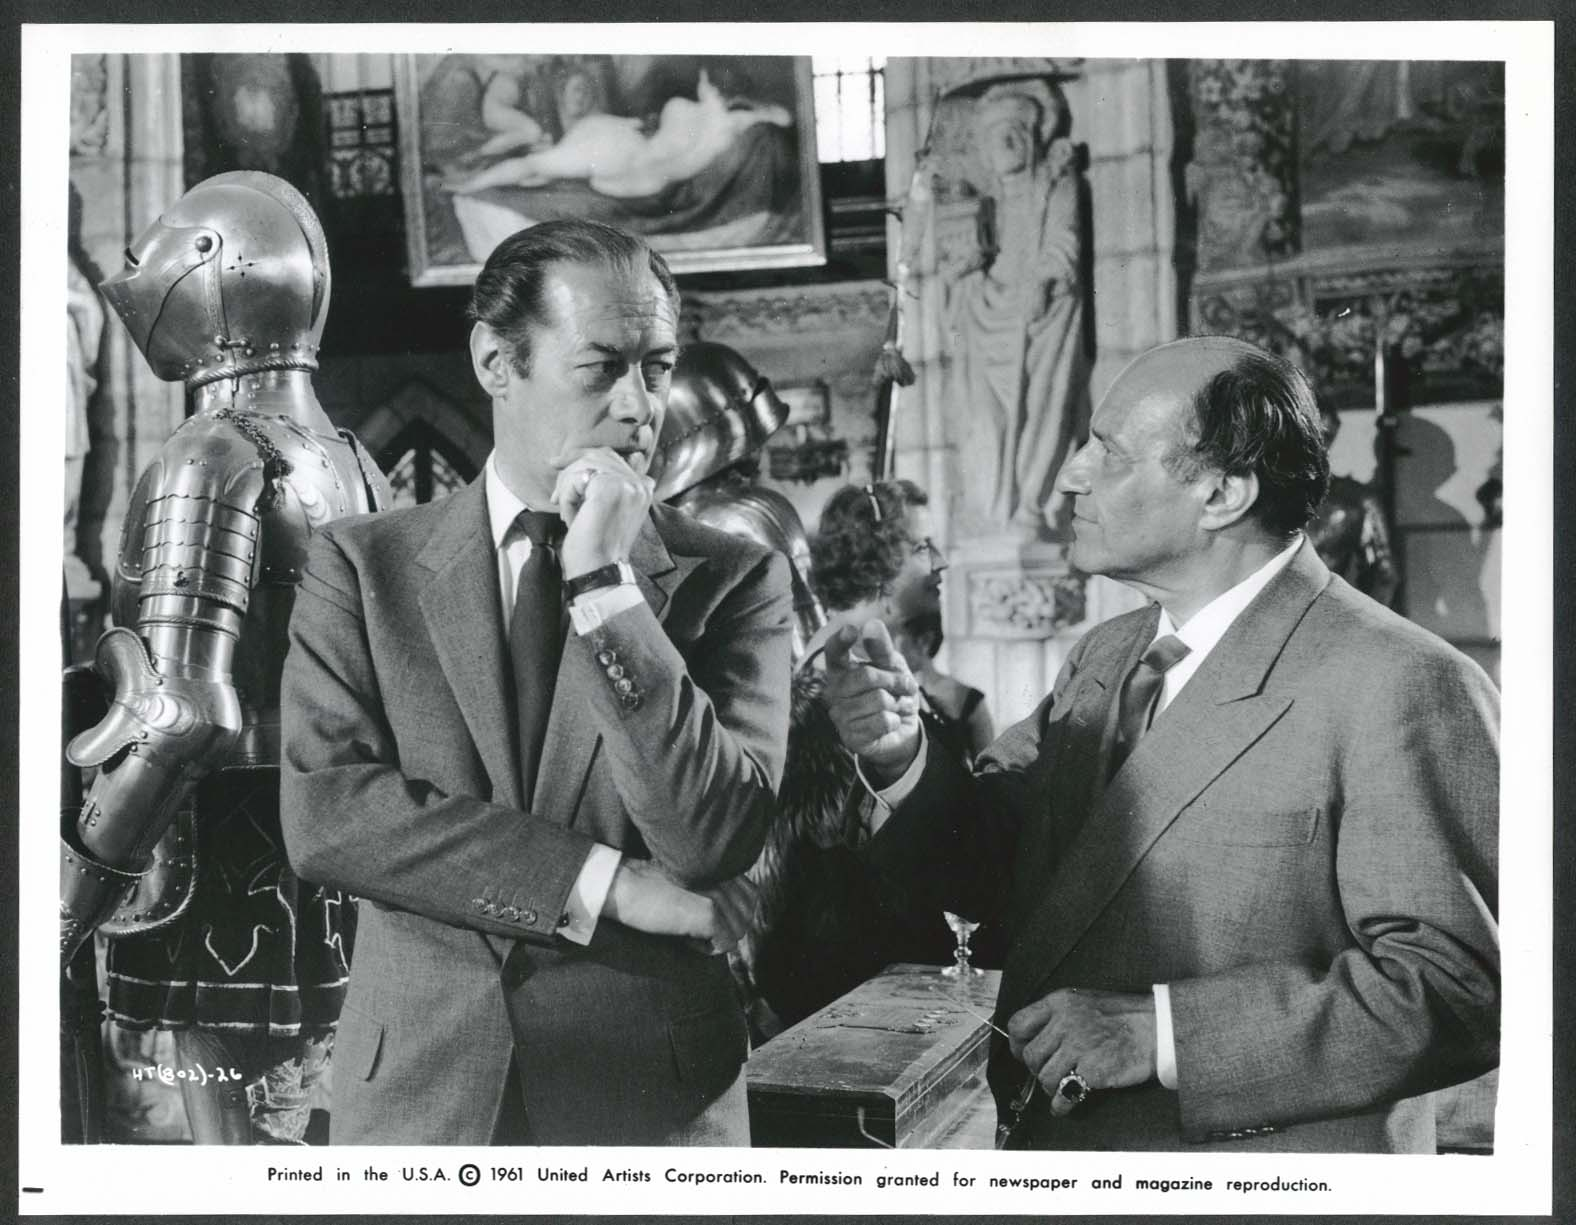 Image for Rex Harrison Peter Illing The Happy Thieves 8x10 photograph 1961